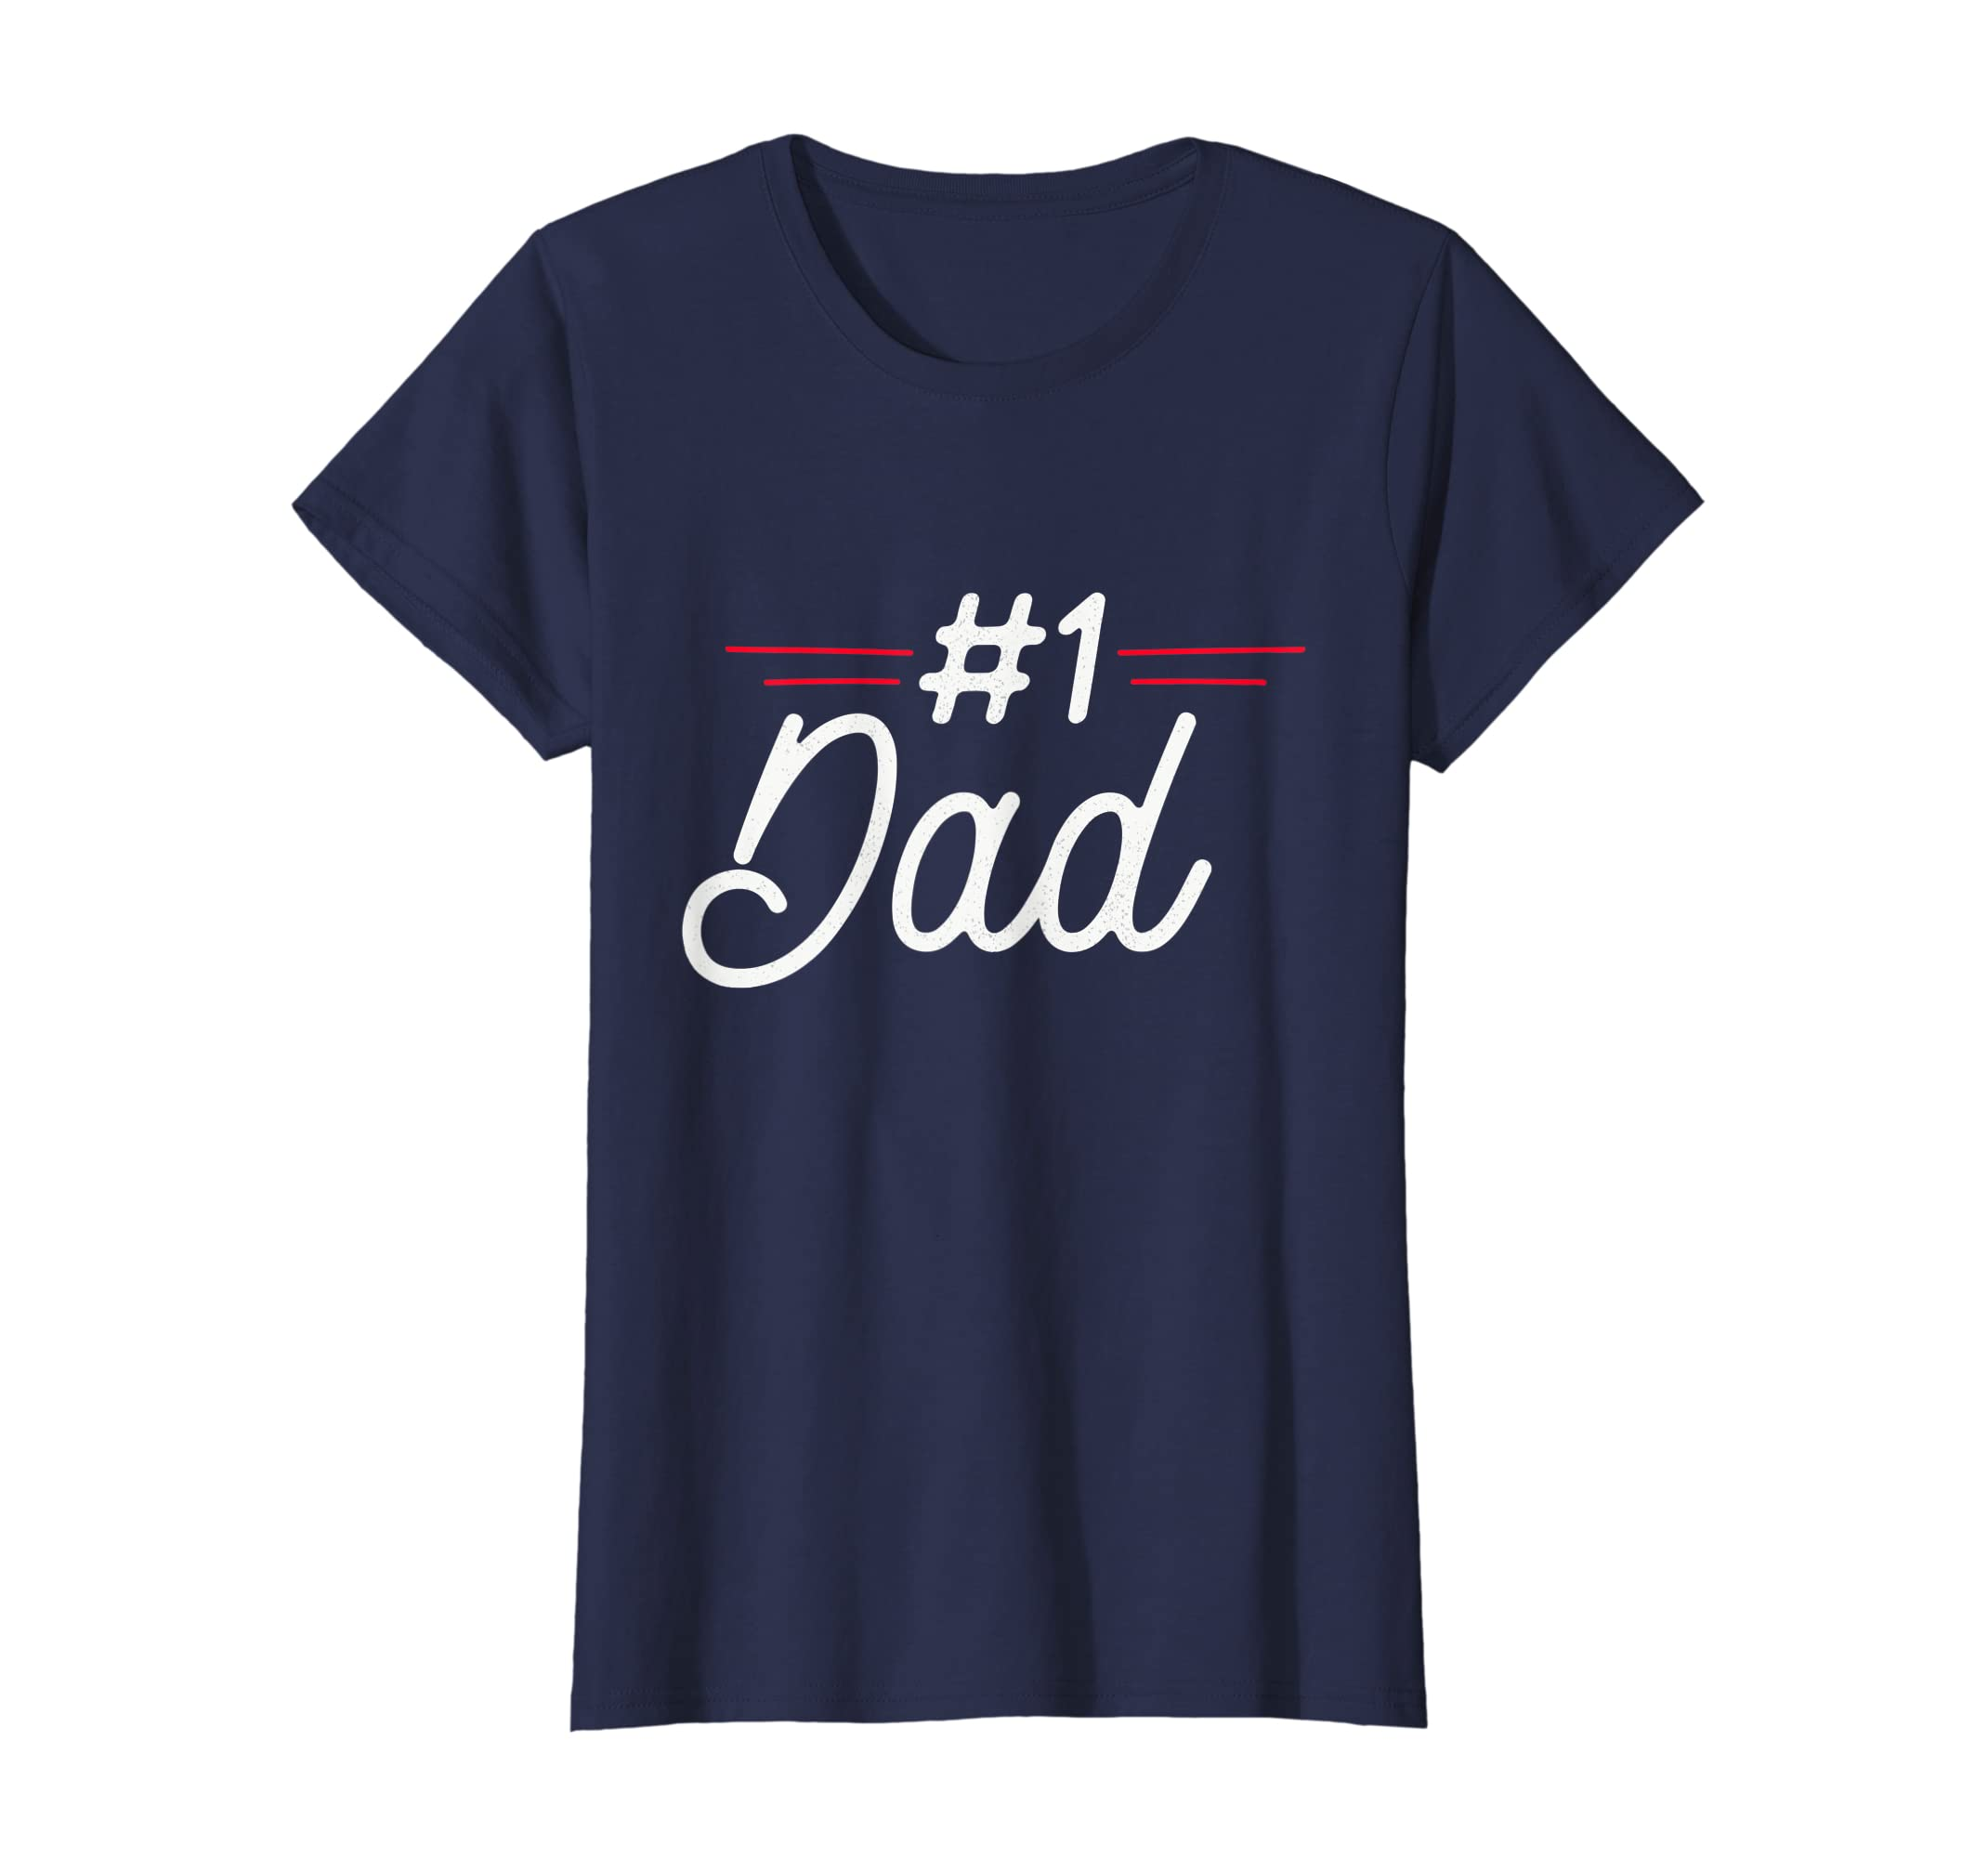 1dd5ca59 Amazon.com: #1 DAD Number One Father's Day Vintage Style T-Shirt: Clothing